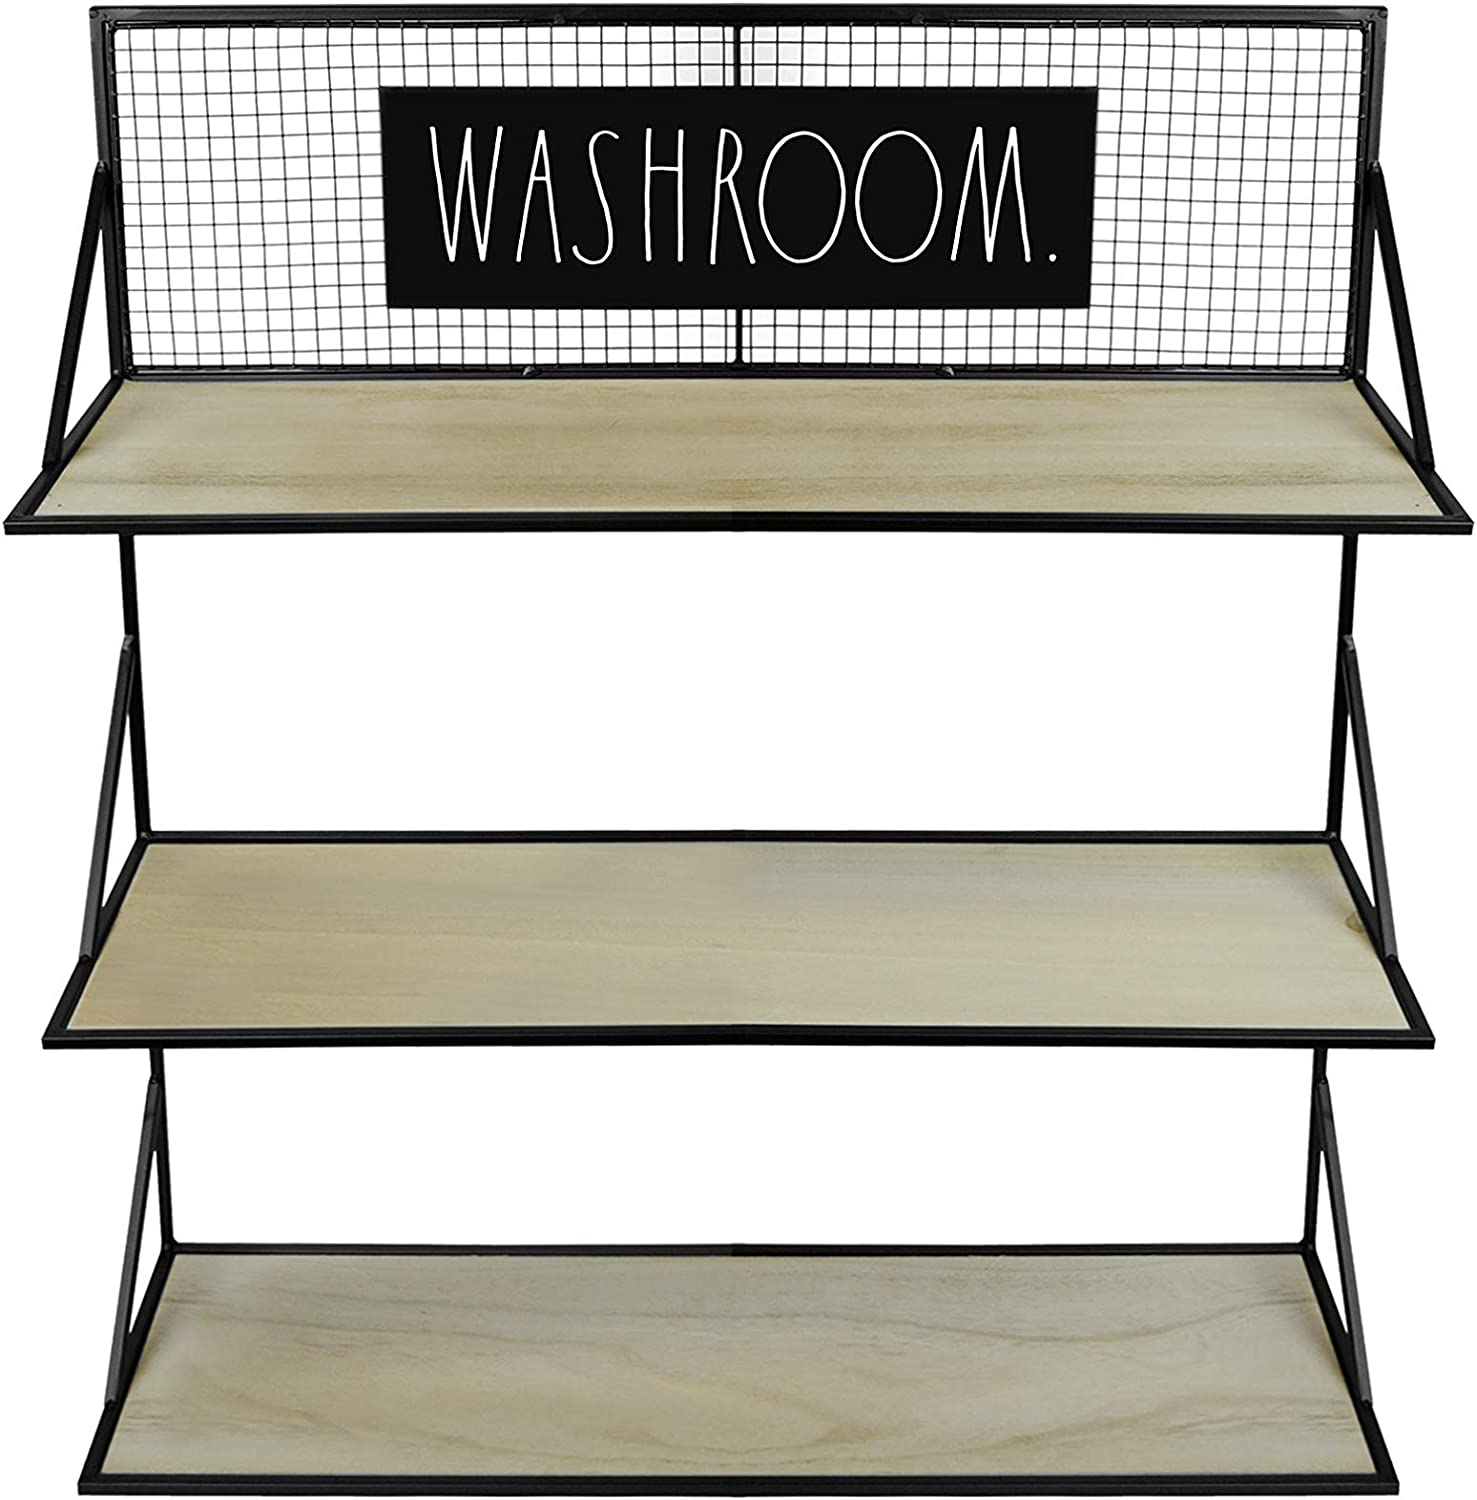 Rae Dunn 3 Tier Wall Shelf 'Washroom' - Wide Open Metal Rack with Wood Shelves for Storage and Display - Rustic, Vintage, Industrial, Farmhouse, Modern, Shabby Chic - Home and Bathroom Décor